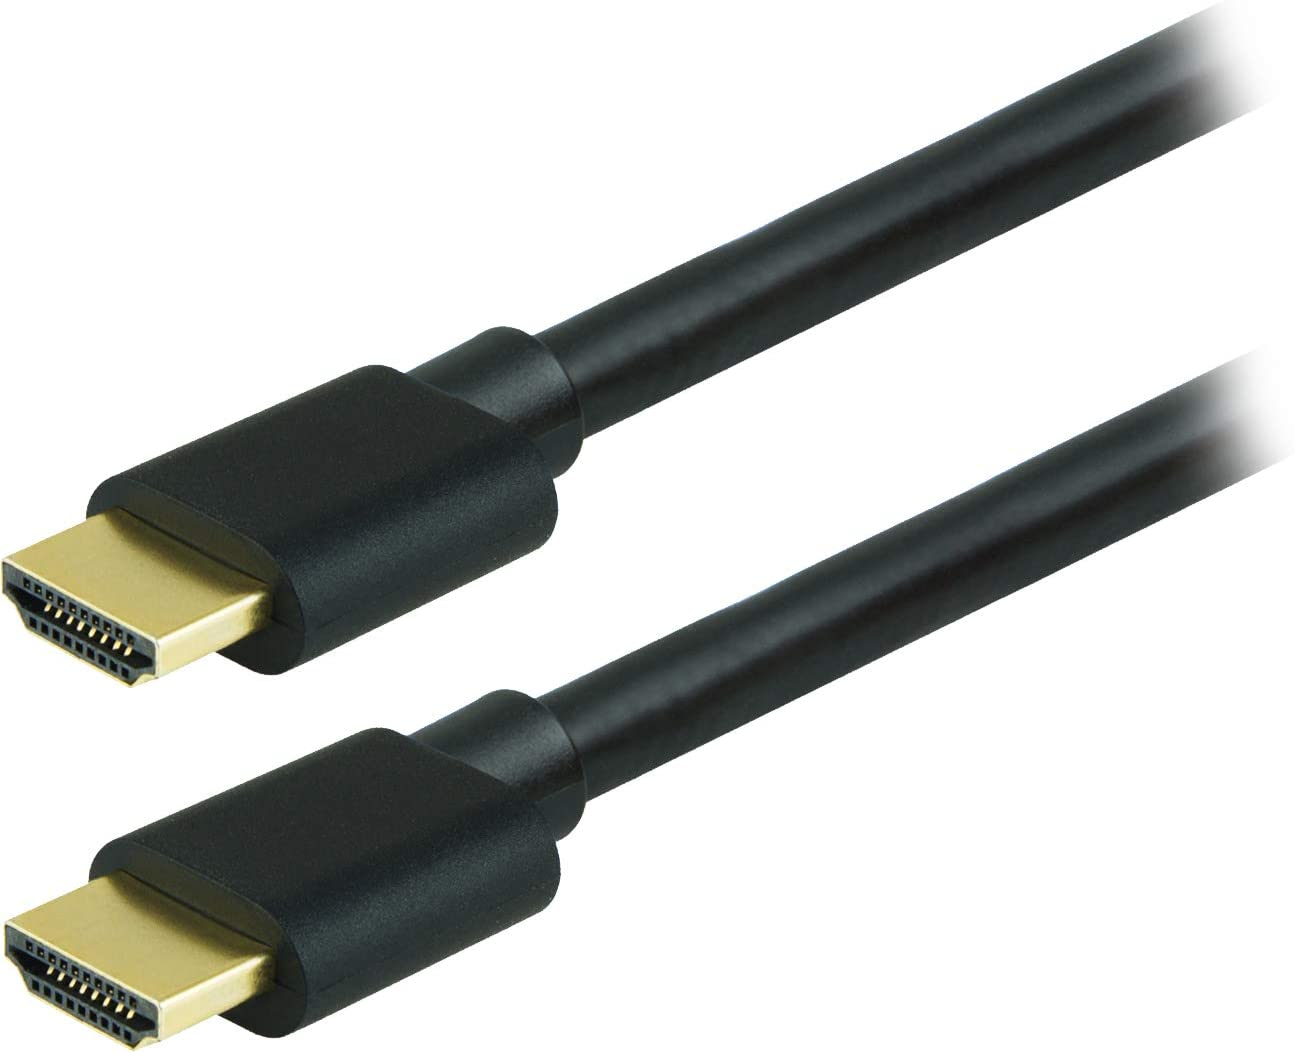 PACK OF HDMI 4K CABLE ULTRA SPEED FOR BLURAY HDTV W// ETHERNET 1080P HD